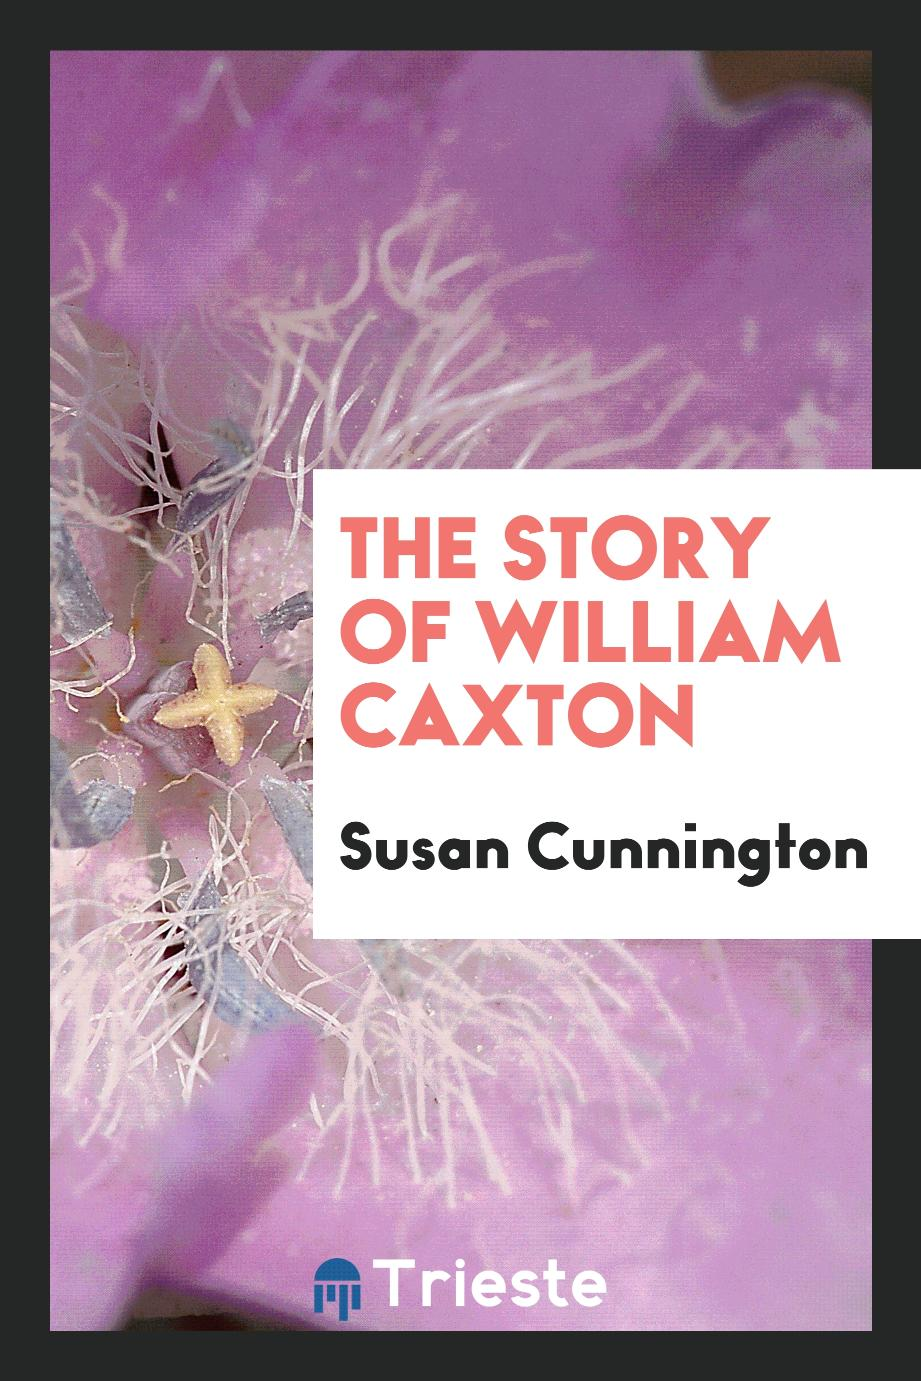 The story of William Caxton